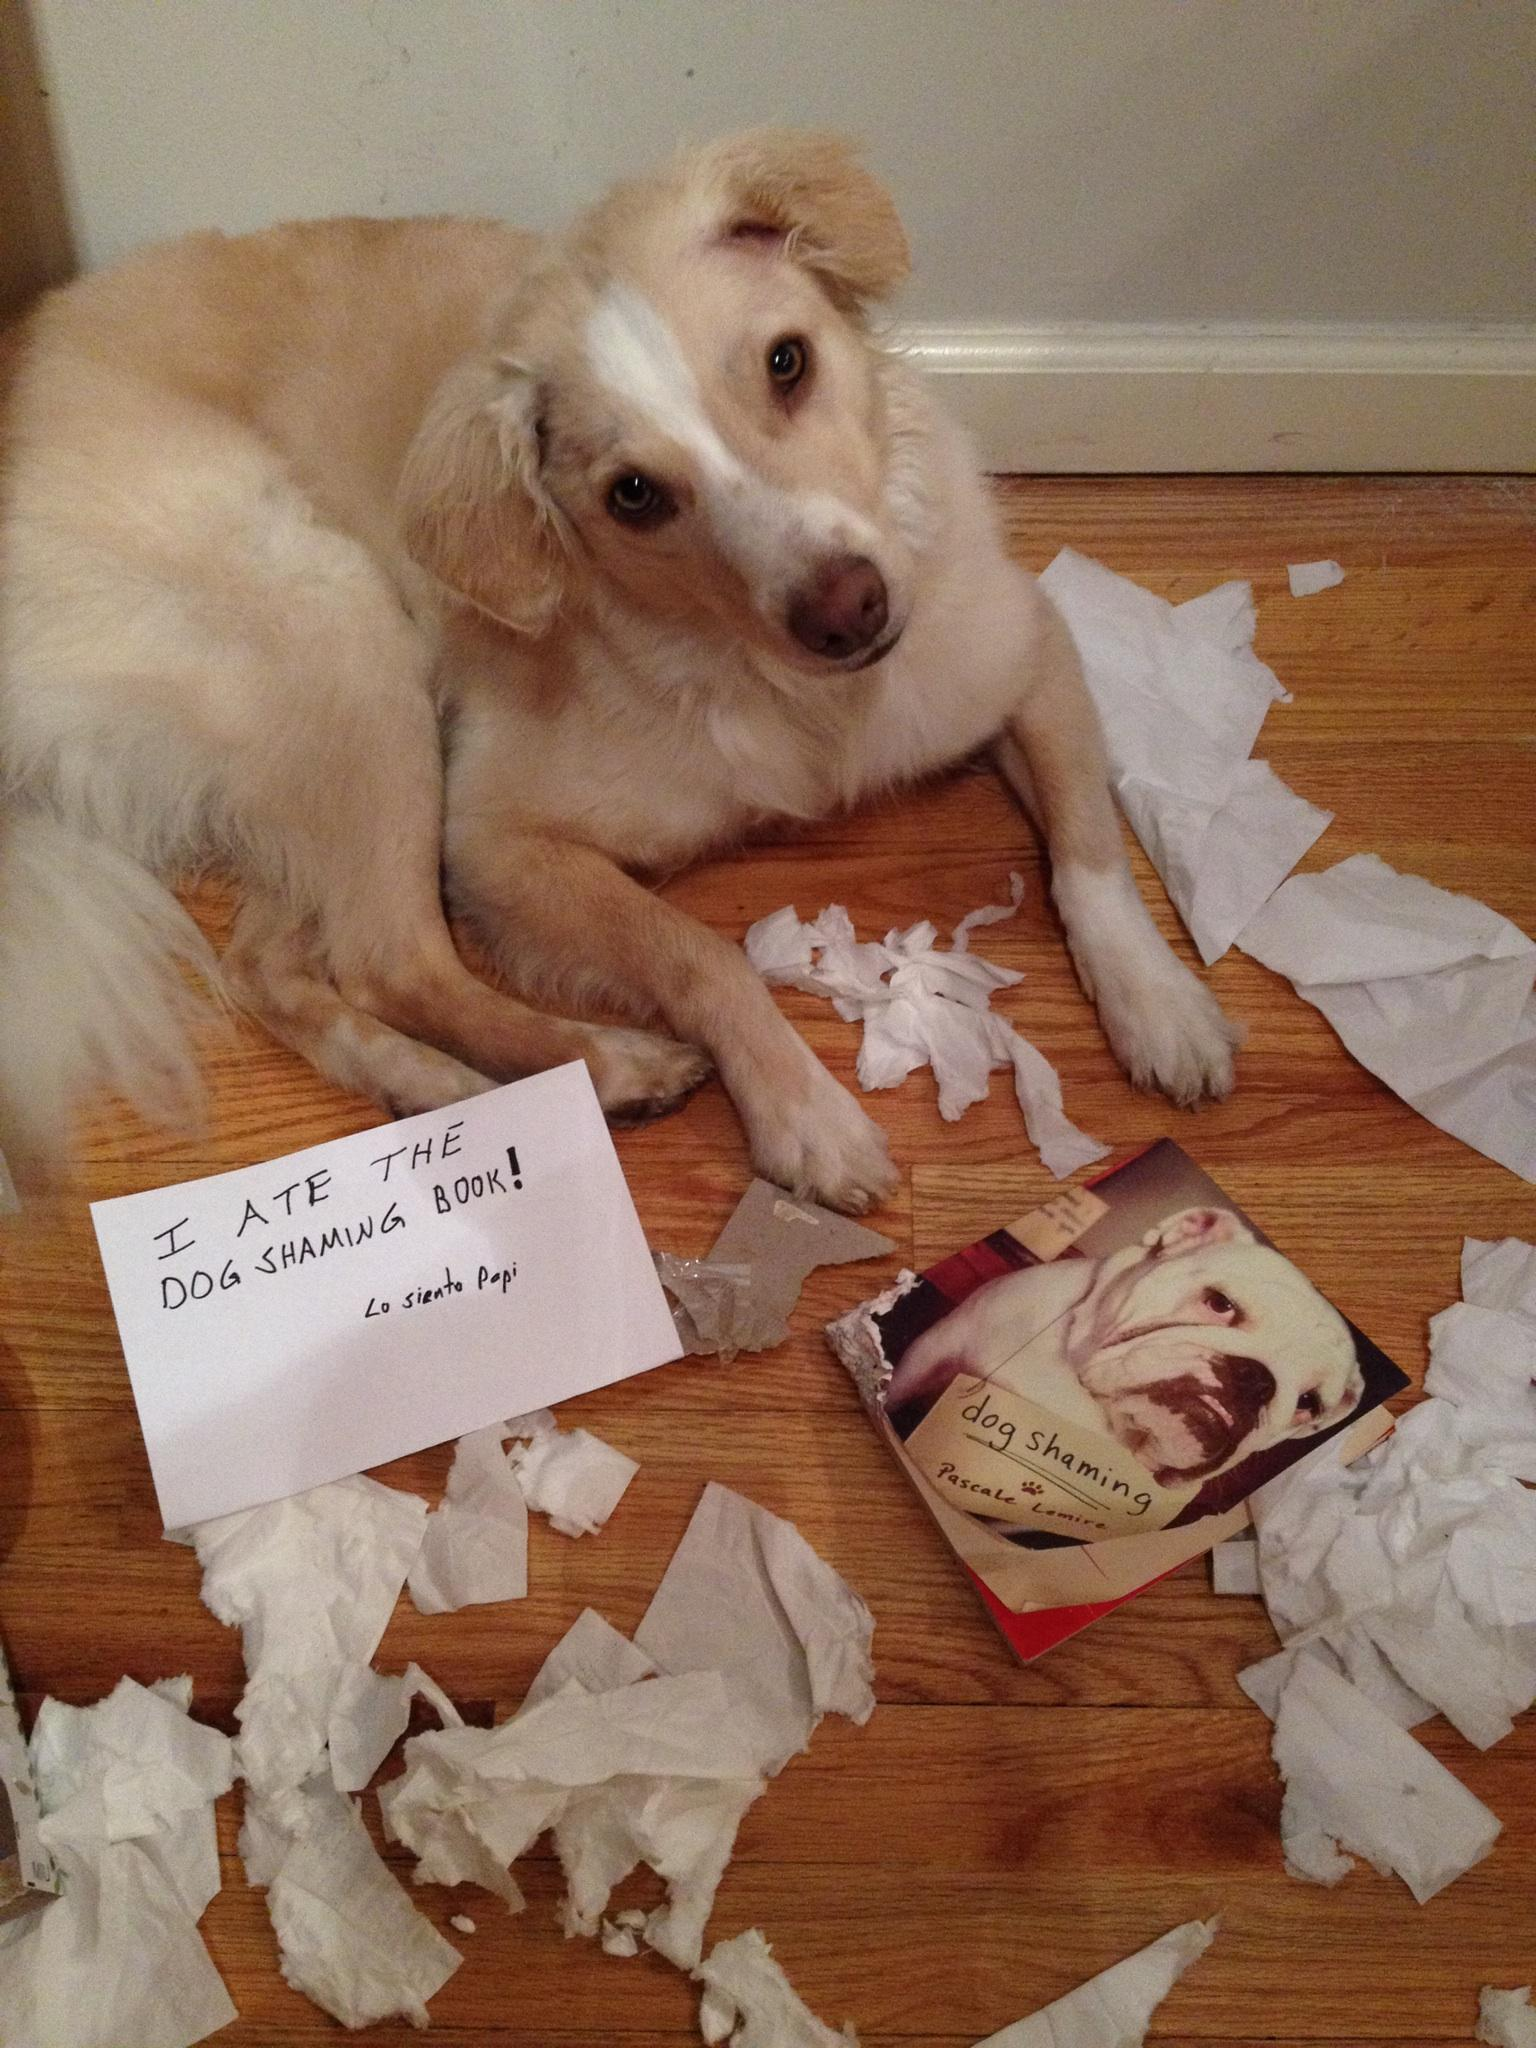 Kali ate the dog shaming book PWas9FSC